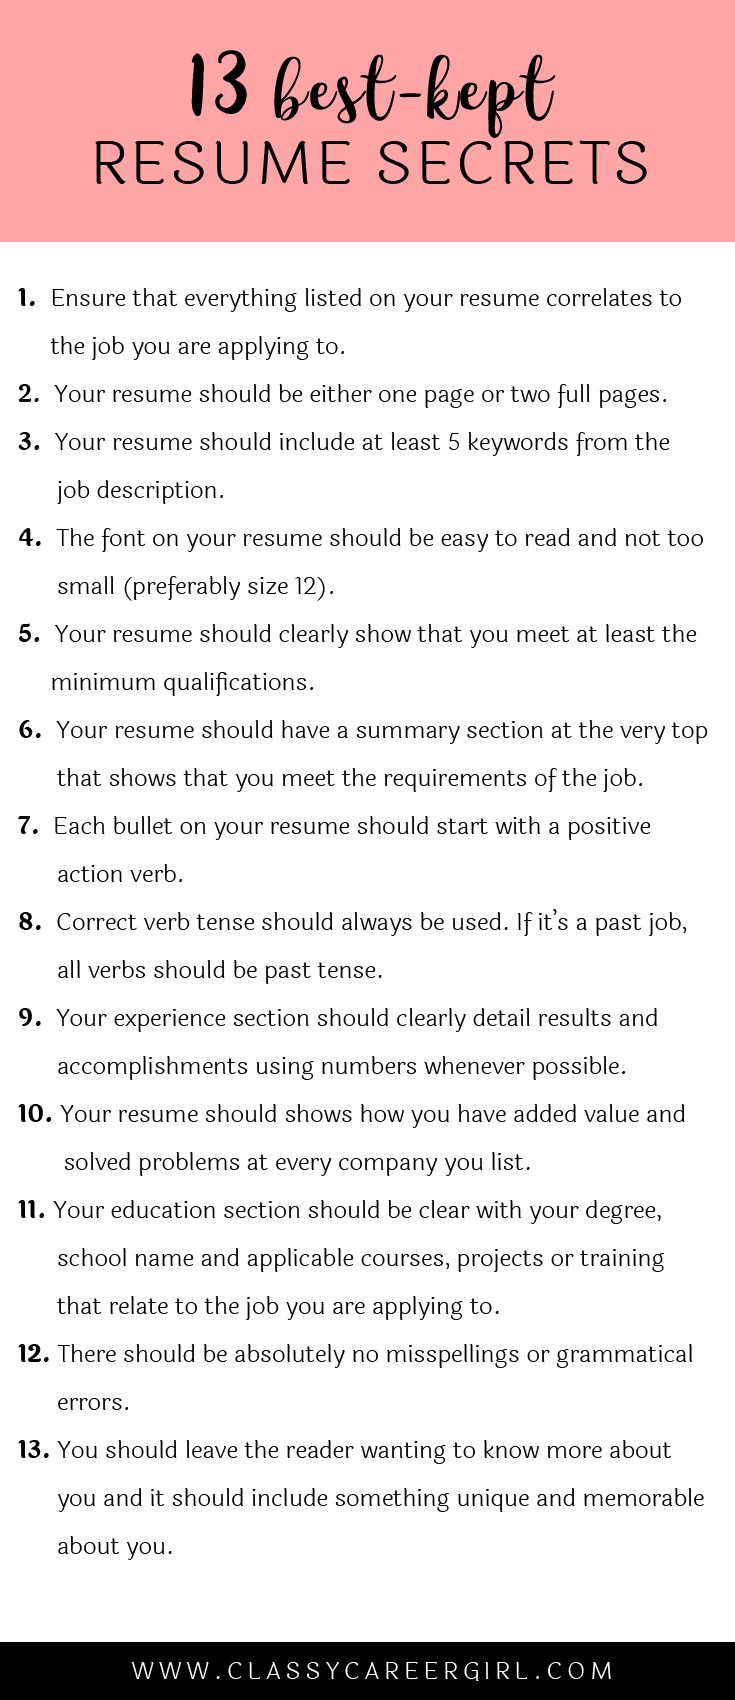 Opposenewapstandardsus  Picturesque  Ideas About Resume On Pinterest  Cv Format Resume  With Engaging Some Hiring Managers Will Toss Your Resume Out If You Dont Know These  With Adorable Cna Resume Example Also Cashier On Resume In Addition How To Write A Resume For High School Students And How To Make Cover Letter For Resume As Well As Hr Resume Objective Additionally Artist Resumes From Pinterestcom With Opposenewapstandardsus  Engaging  Ideas About Resume On Pinterest  Cv Format Resume  With Adorable Some Hiring Managers Will Toss Your Resume Out If You Dont Know These  And Picturesque Cna Resume Example Also Cashier On Resume In Addition How To Write A Resume For High School Students From Pinterestcom